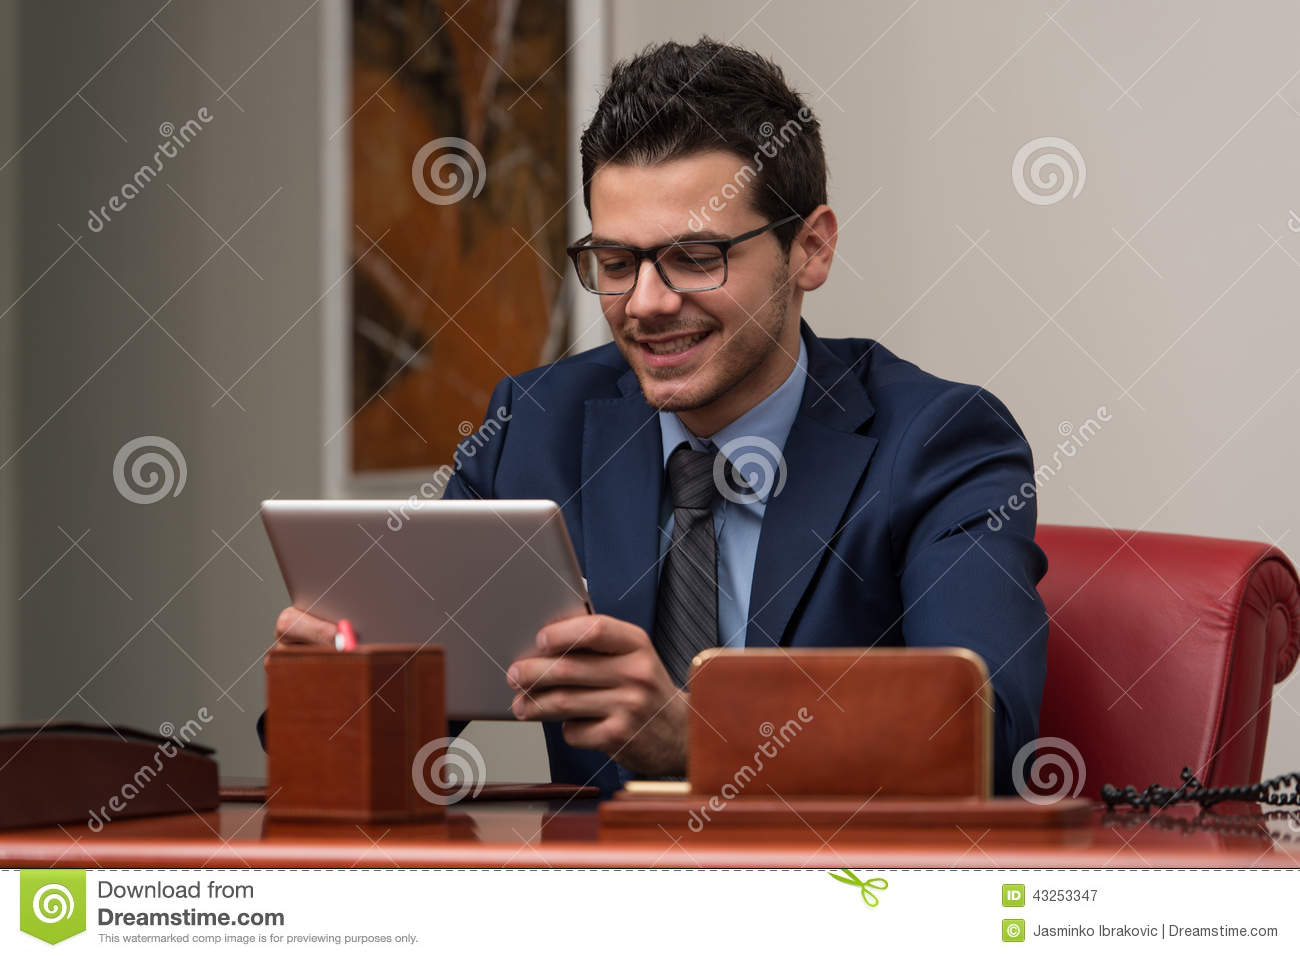 Young Man Working On Computer In Office